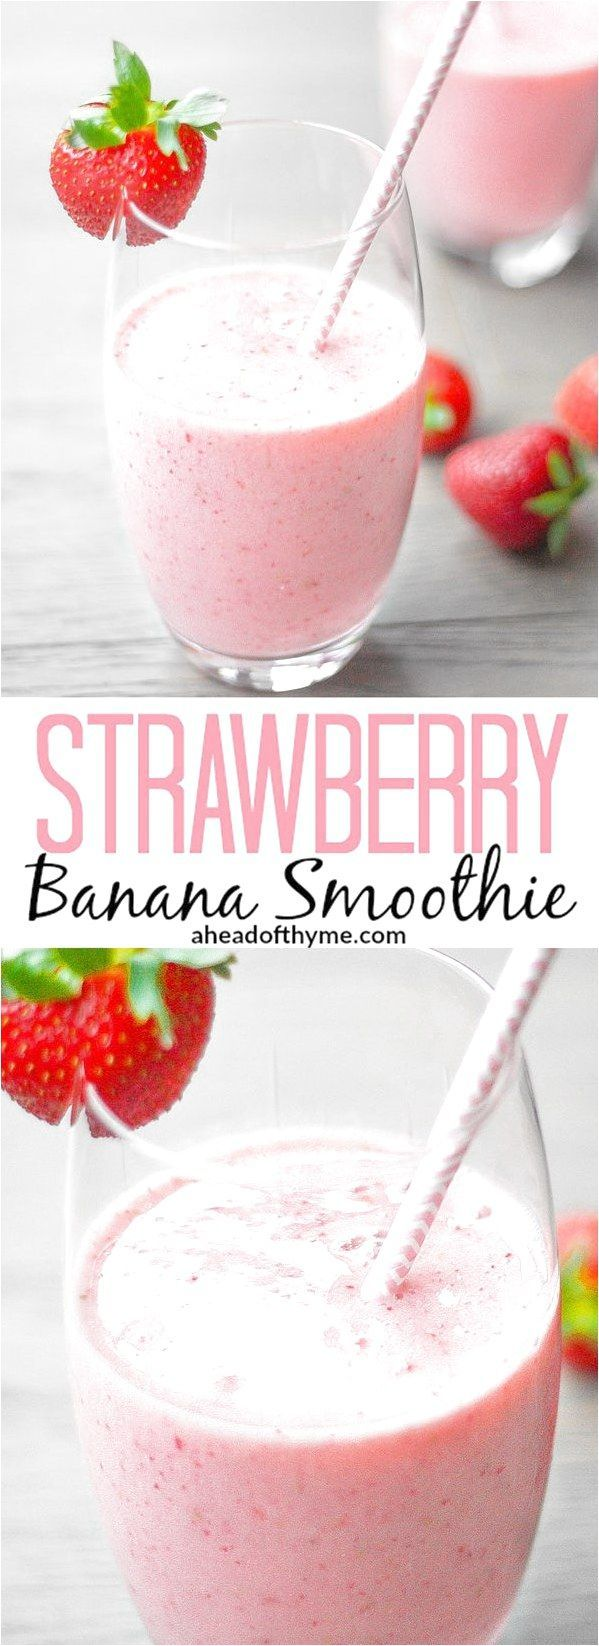 Strawberry Banana Smoothie This delicious and healthy strawberry banana smoothie contains the perfect combination of strawberries and banana to leave you refreshed and sustained  aheadofthymecom #KidsSmoothies click to see more... #strawberrybananasmoothie Strawberry Banana Smoothie This delicious and healthy strawberry banana smoothie contains the perfect combination of strawberries and banana to leave you refreshed and sustained  aheadofthymecom #KidsSmoothies click to see more... #strawberrybananasmoothie